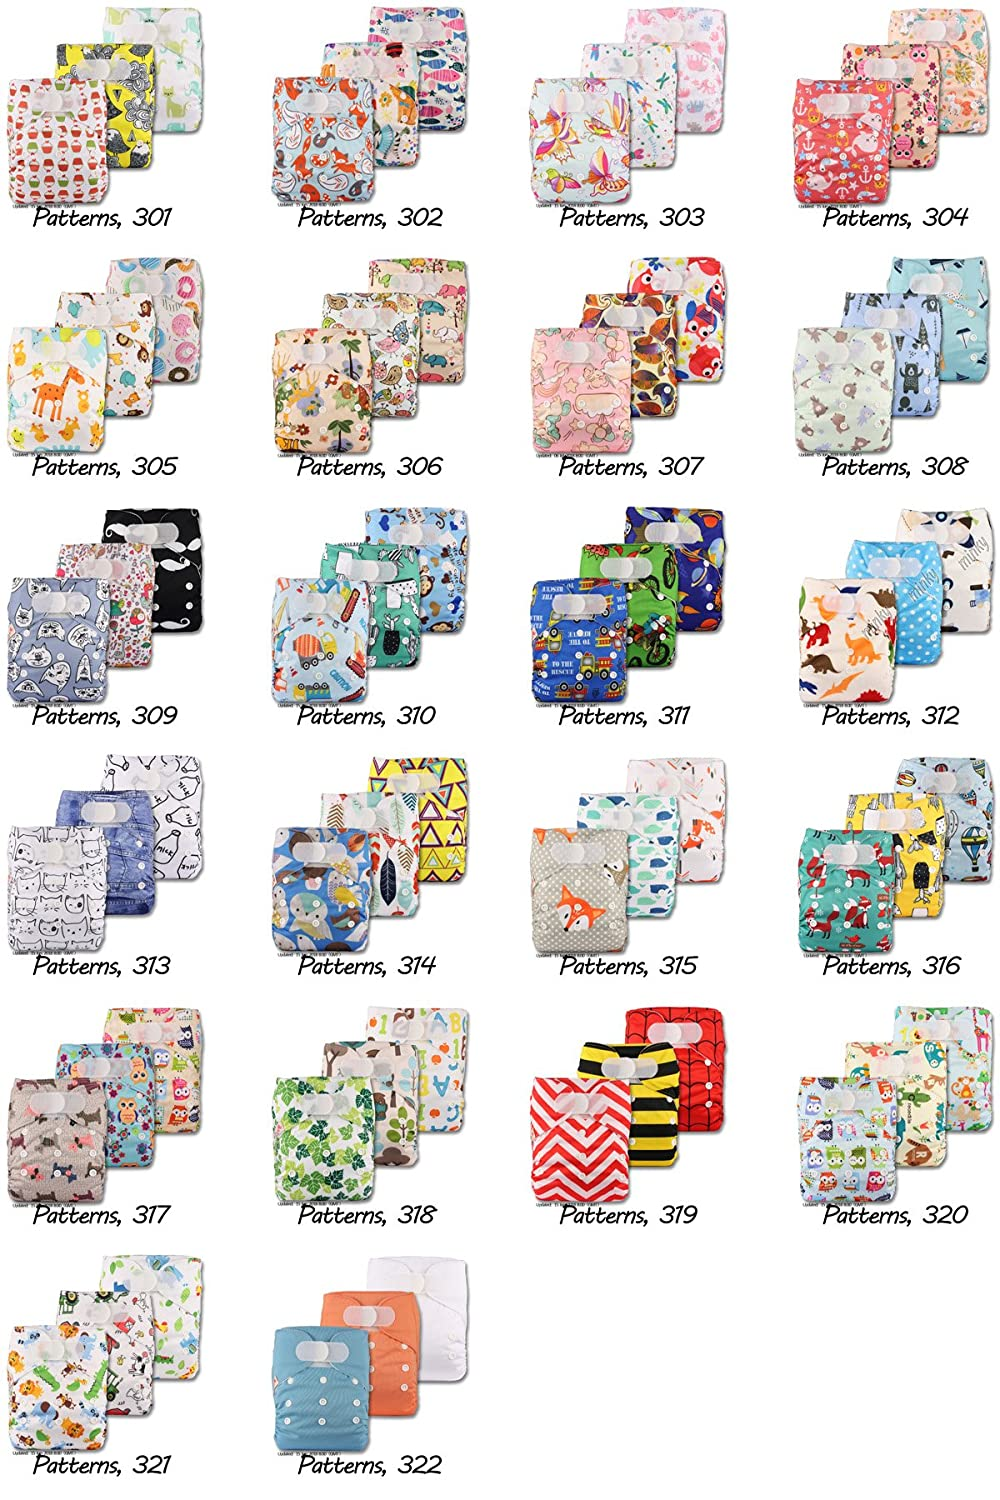 Patterns 312 Set of 3 Fastener: Popper with 3 Bamboo Charcoal Inserts Littles /& Bloomz Reusable Pocket Cloth Nappy